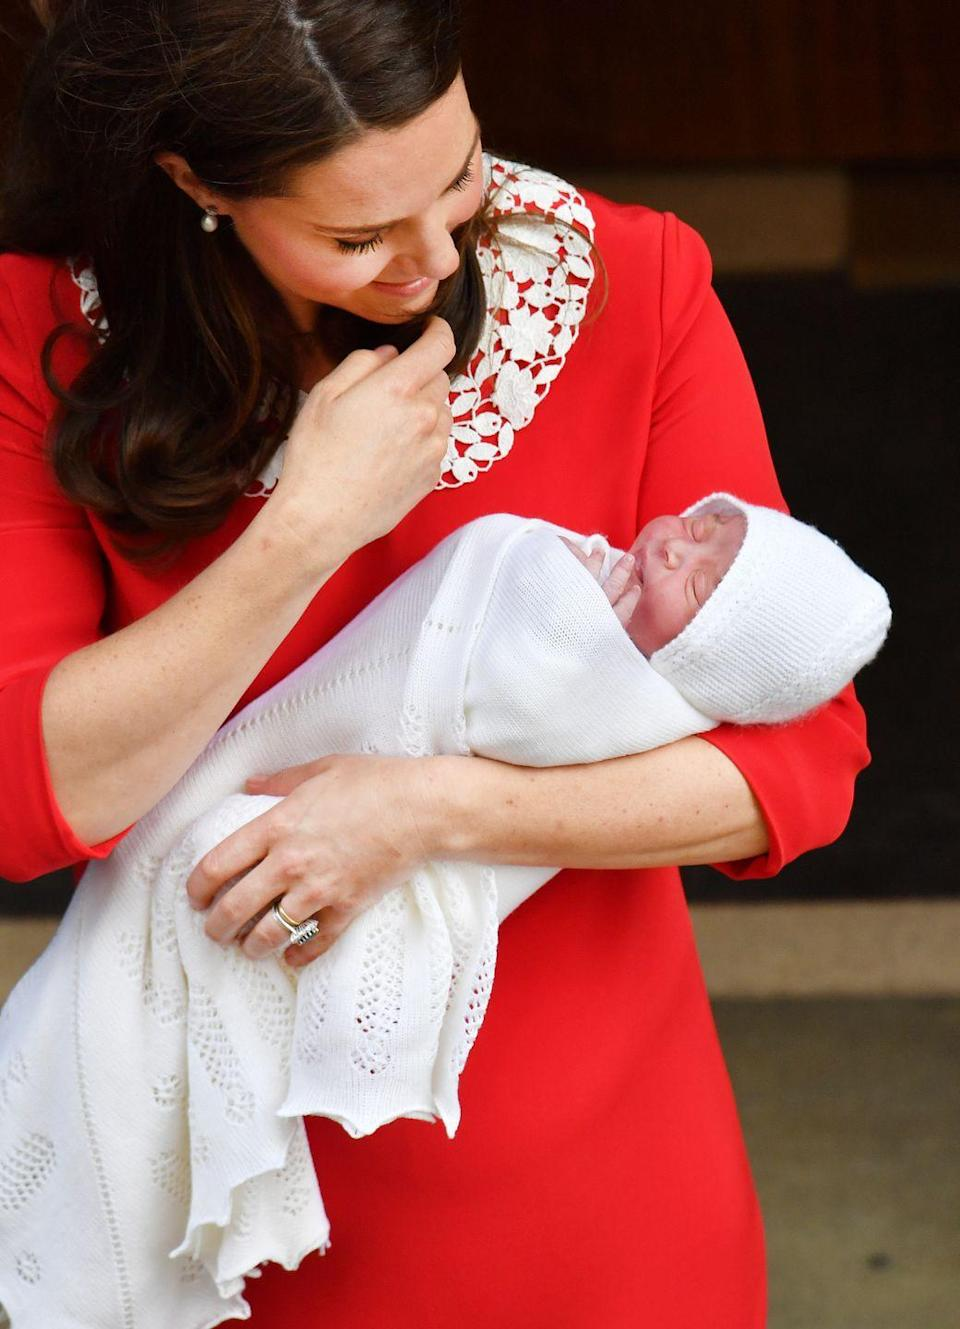 """<p>Baby showers aren't a traditional custom in the United Kingdom. In most cases, friends wait until the baby is born to bring gifts and see the baby. </p><p>RELATED: <a href=""""https://www.goodhousekeeping.com/life/parenting/g5096/royal-family-baby-traditions/"""" rel=""""nofollow noopener"""" target=""""_blank"""" data-ylk=""""slk:Royal Baby Traditions You Didn't Know Existed"""" class=""""link rapid-noclick-resp"""">Royal Baby Traditions You Didn't Know Existed </a></p>"""